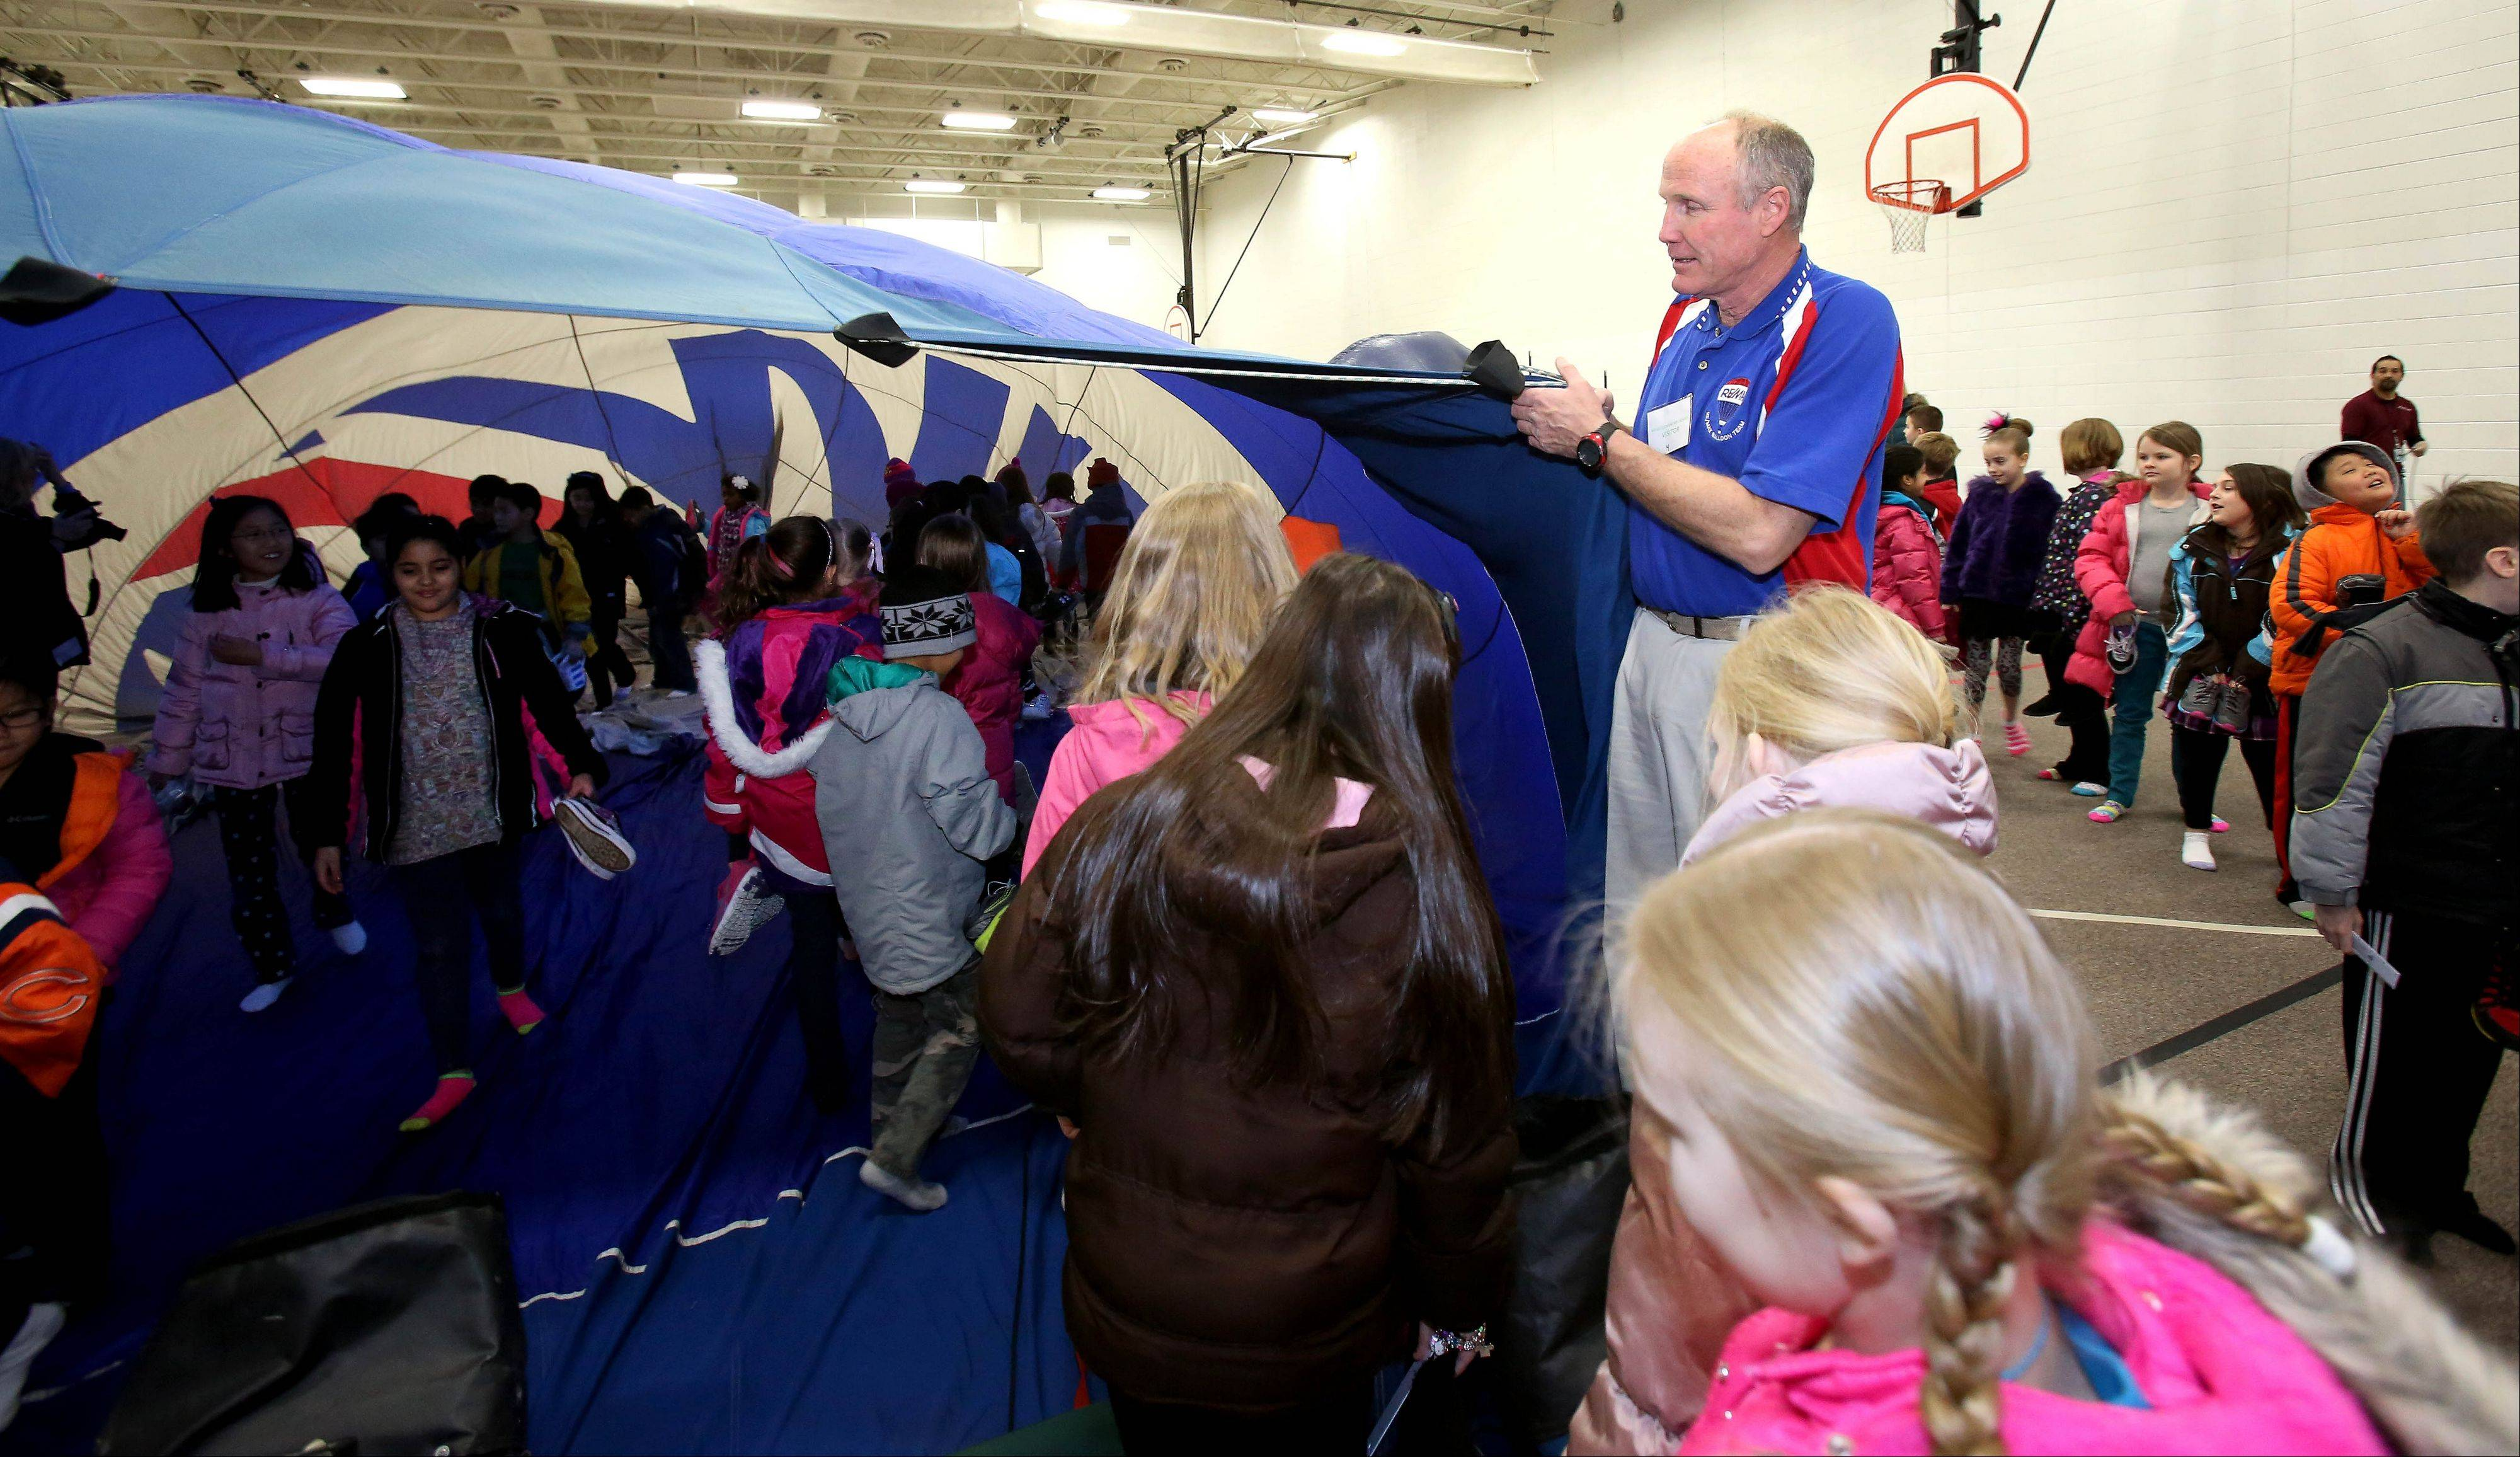 Bill Baker, a hot-air balloon pilot with RE/MAX, holds the partially inflated balloon so kids from Welch Elementary School in Naperville can walk around inside.